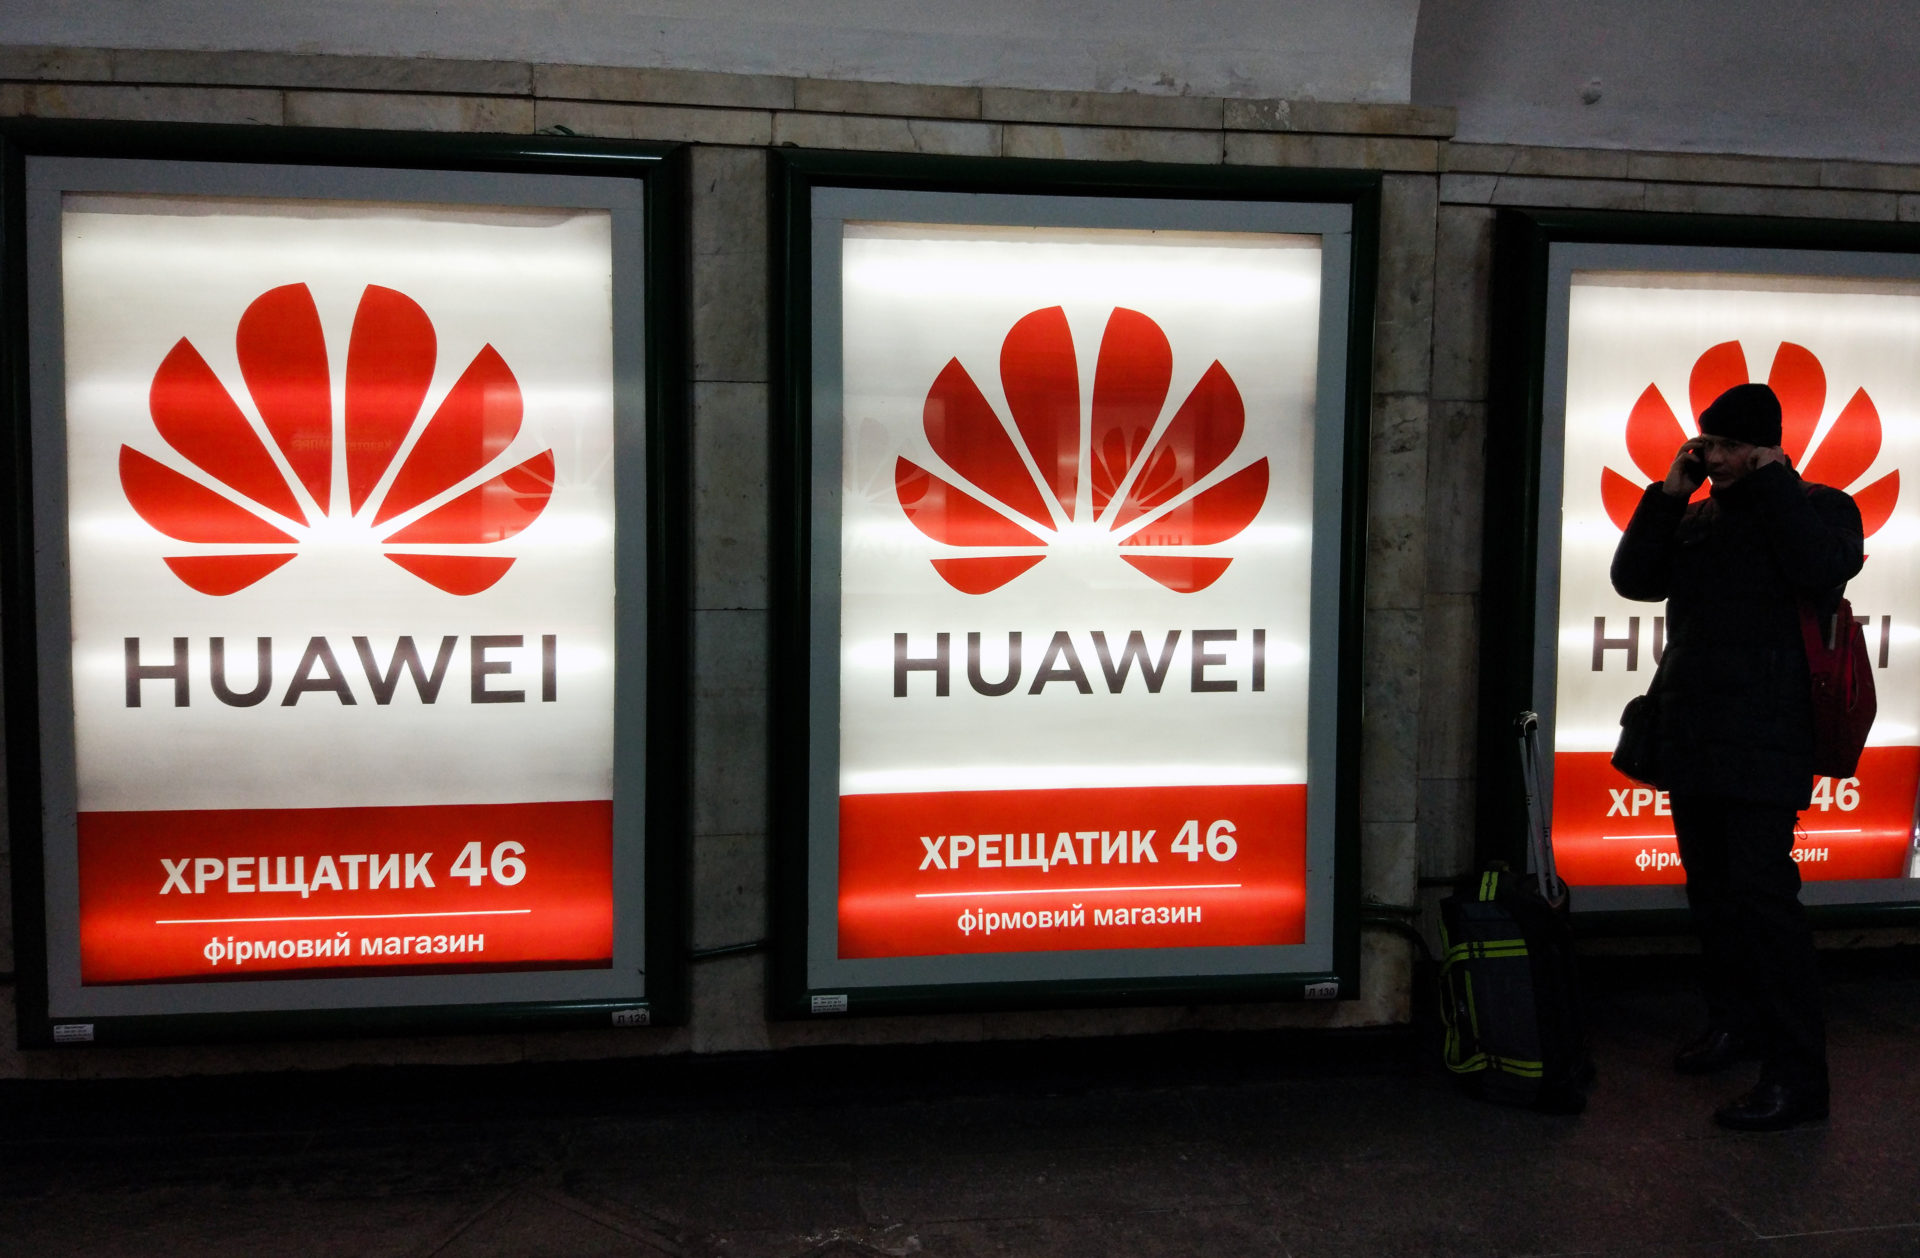 Silver lining in damning Huawei security report, says former GCHQ officer